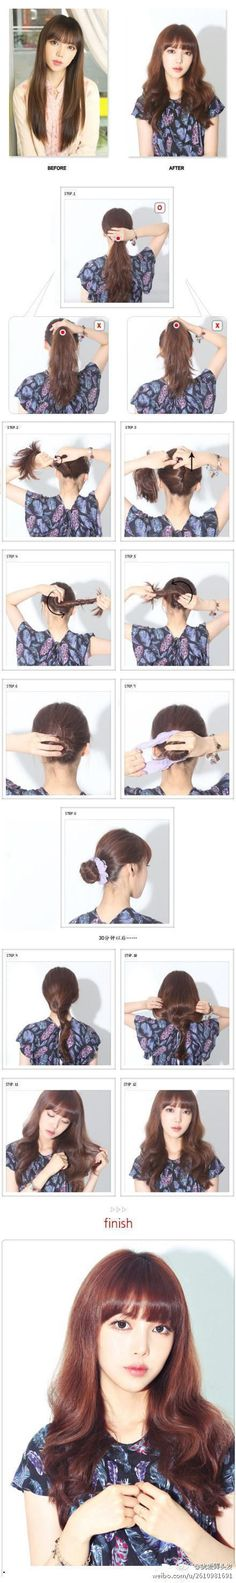 DIY Straight to Curl Hairstyle-  twist hair like in the picture and twirl into a bun, and secure. Wait 30 mins and done!